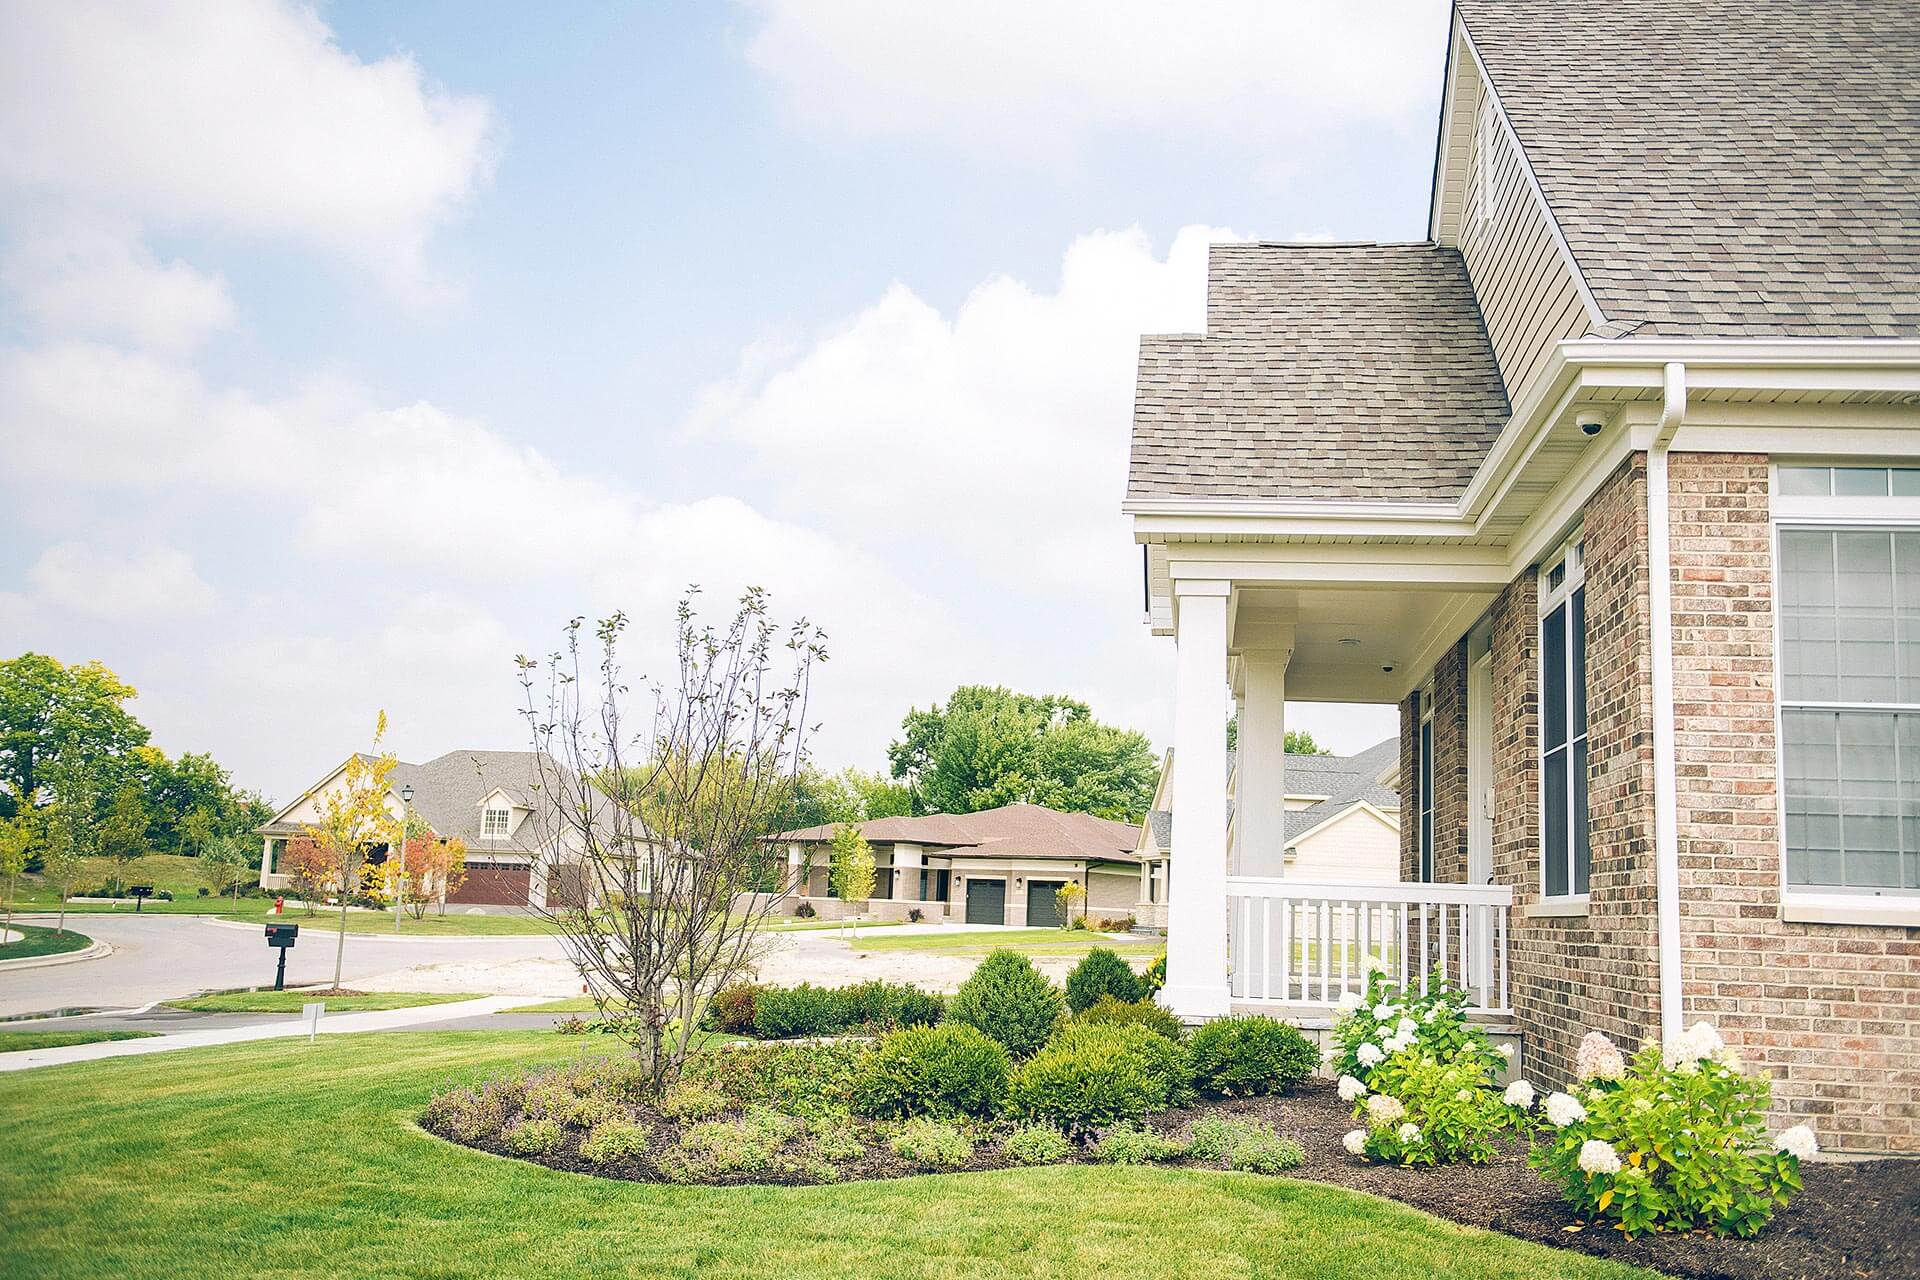 Beautiful new homes on a cul-de-sac in Provenance, in Northbrook, IL